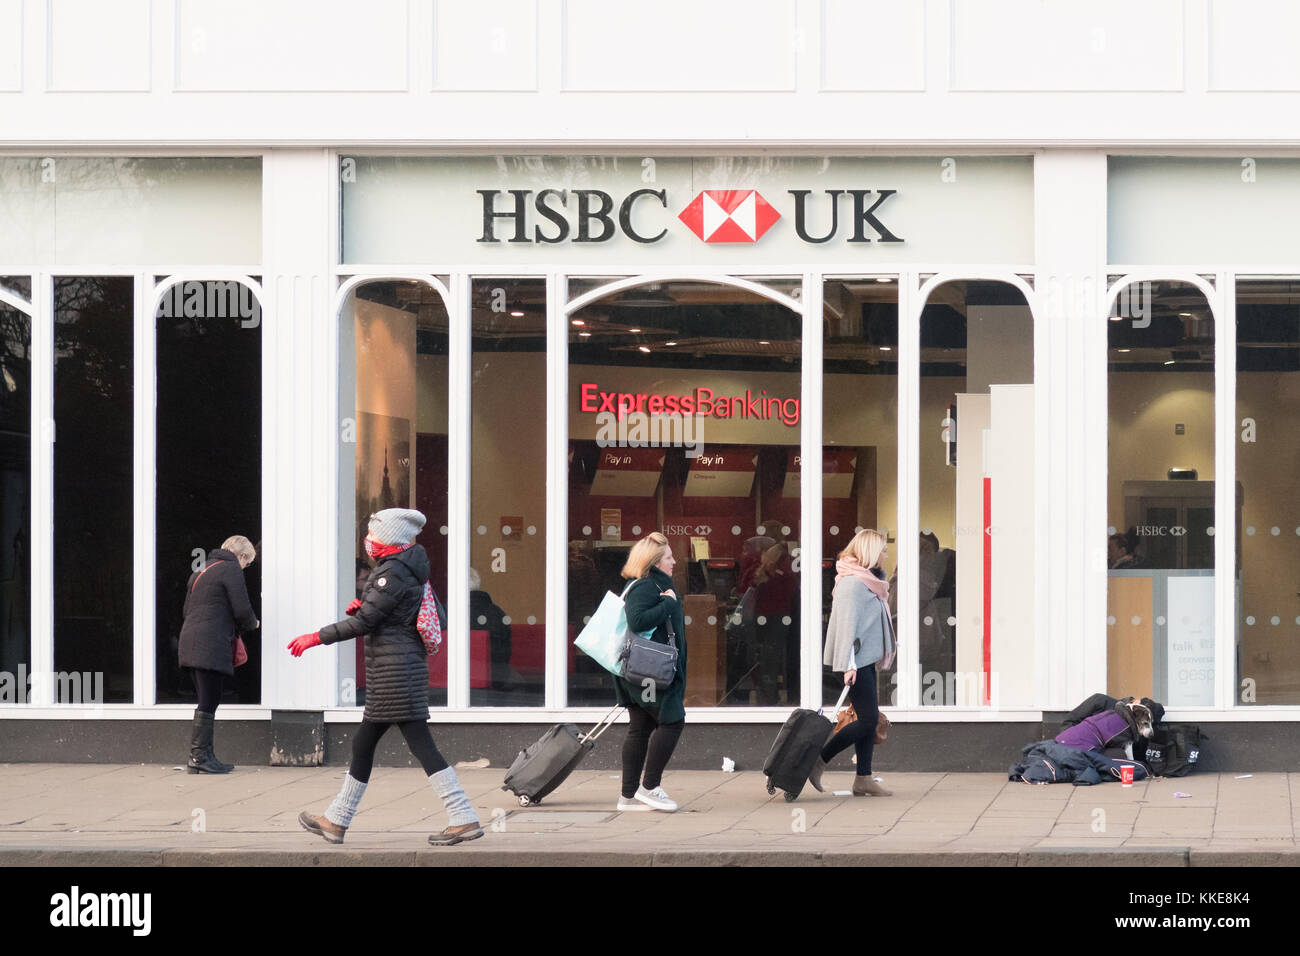 Uk Bank Branch Stock Photos & Uk Bank Branch Stock Images ...